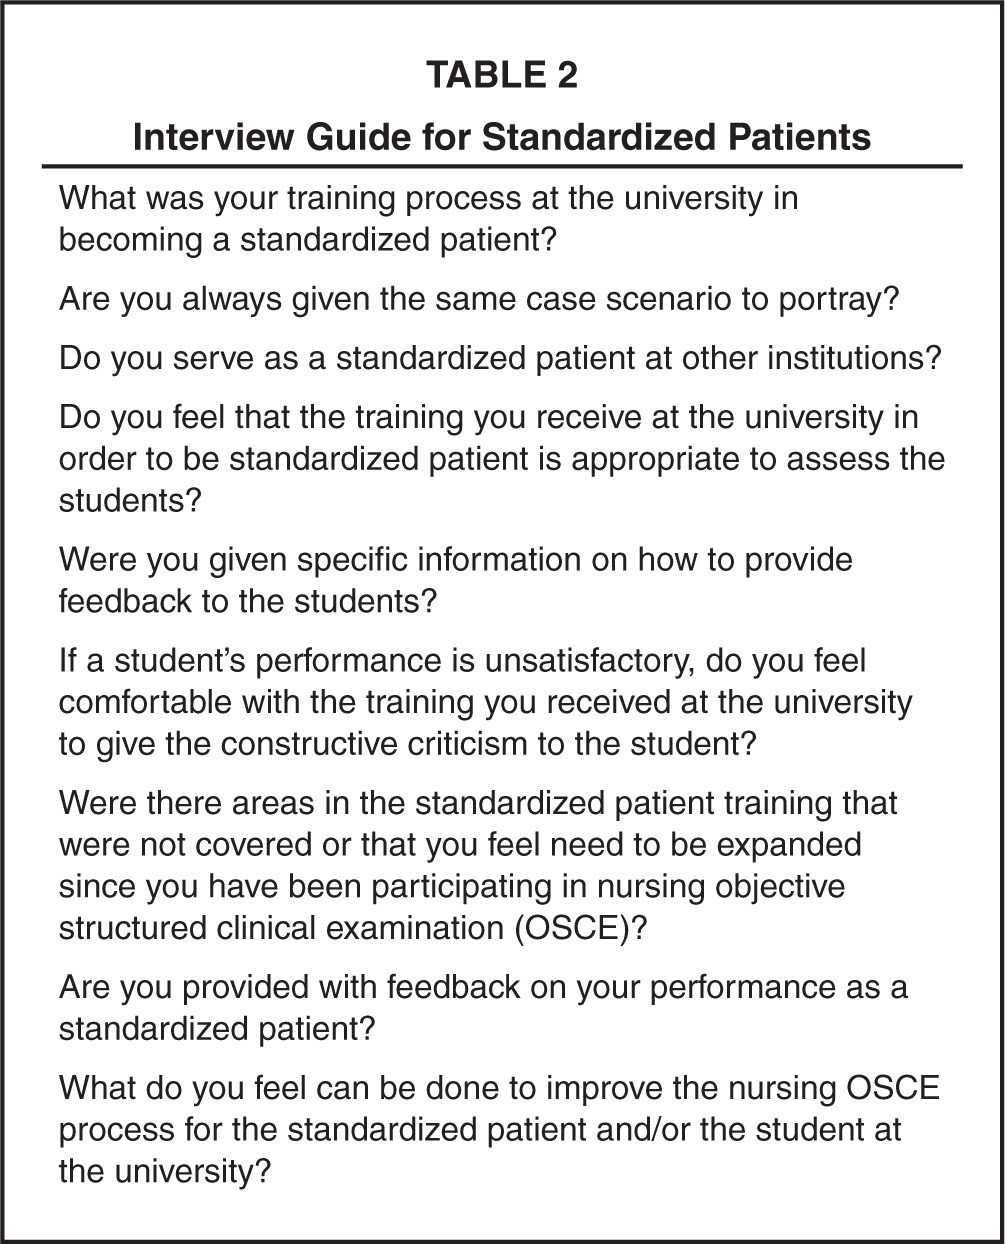 Interview Guide for Standardized Patients